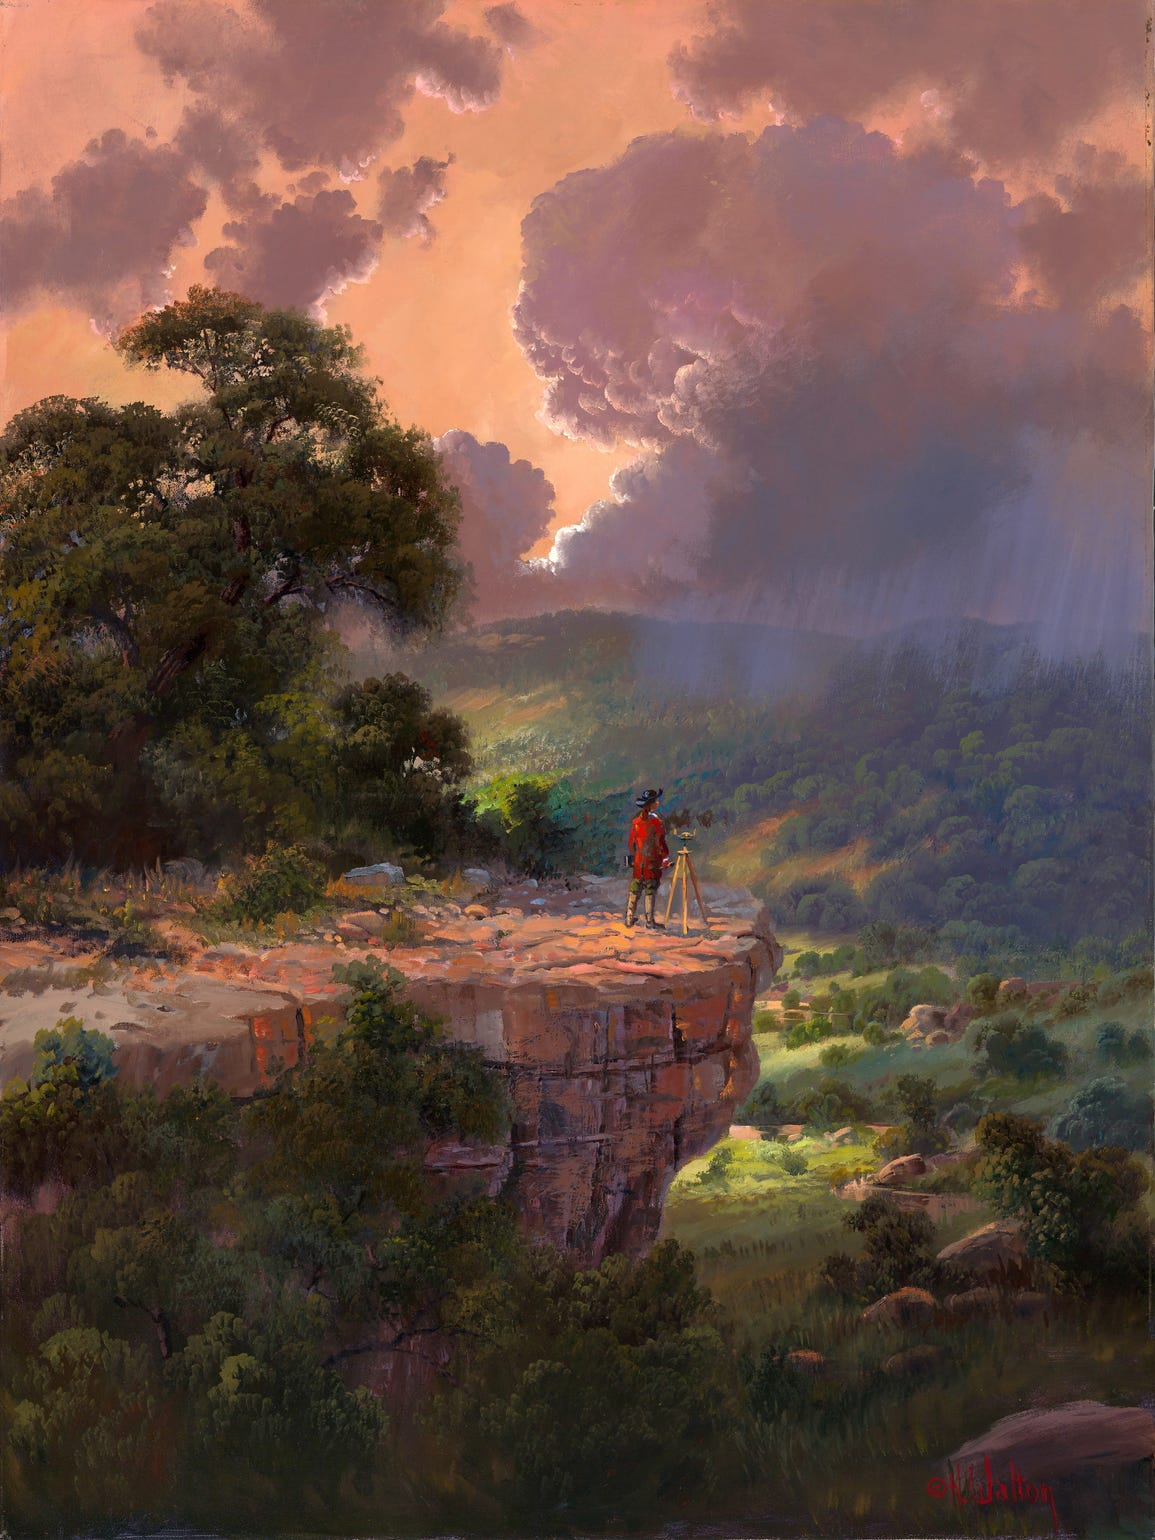 George Washington surveys a wondrous natural scene in this painting, a previous work of Kay Walton's to which Washington was added.